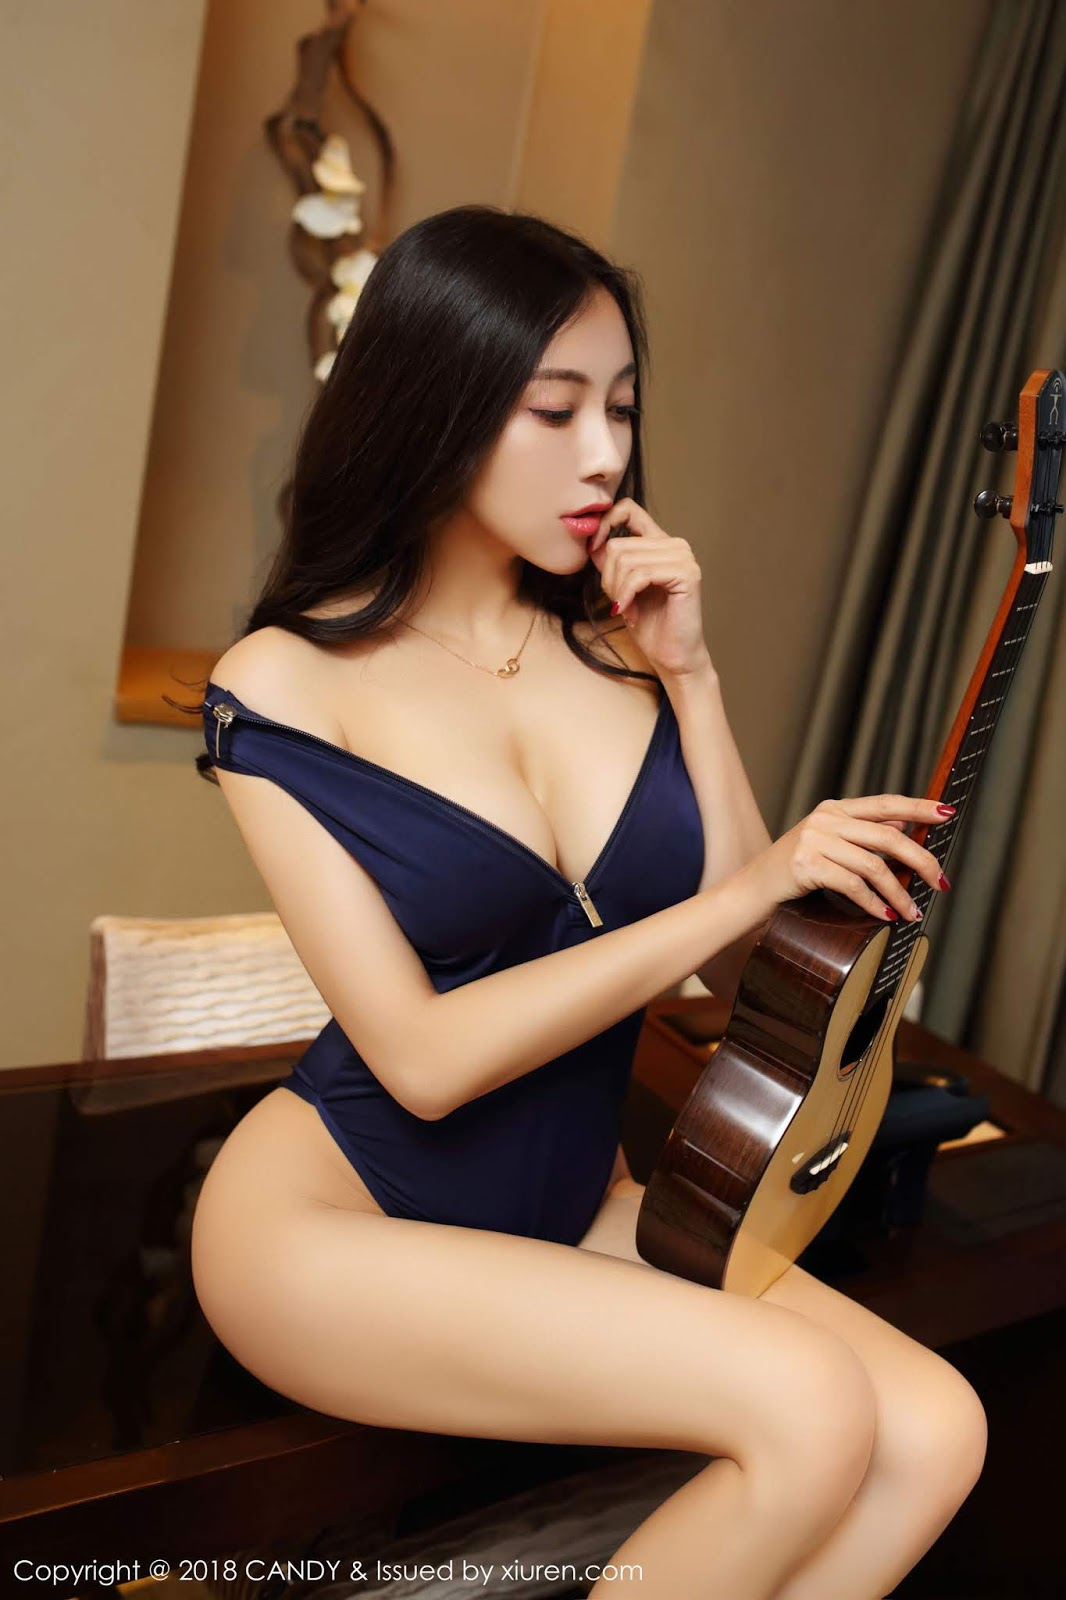 Victoria Song Guo 松果儿cc Massive Boobs Chinese Model is a